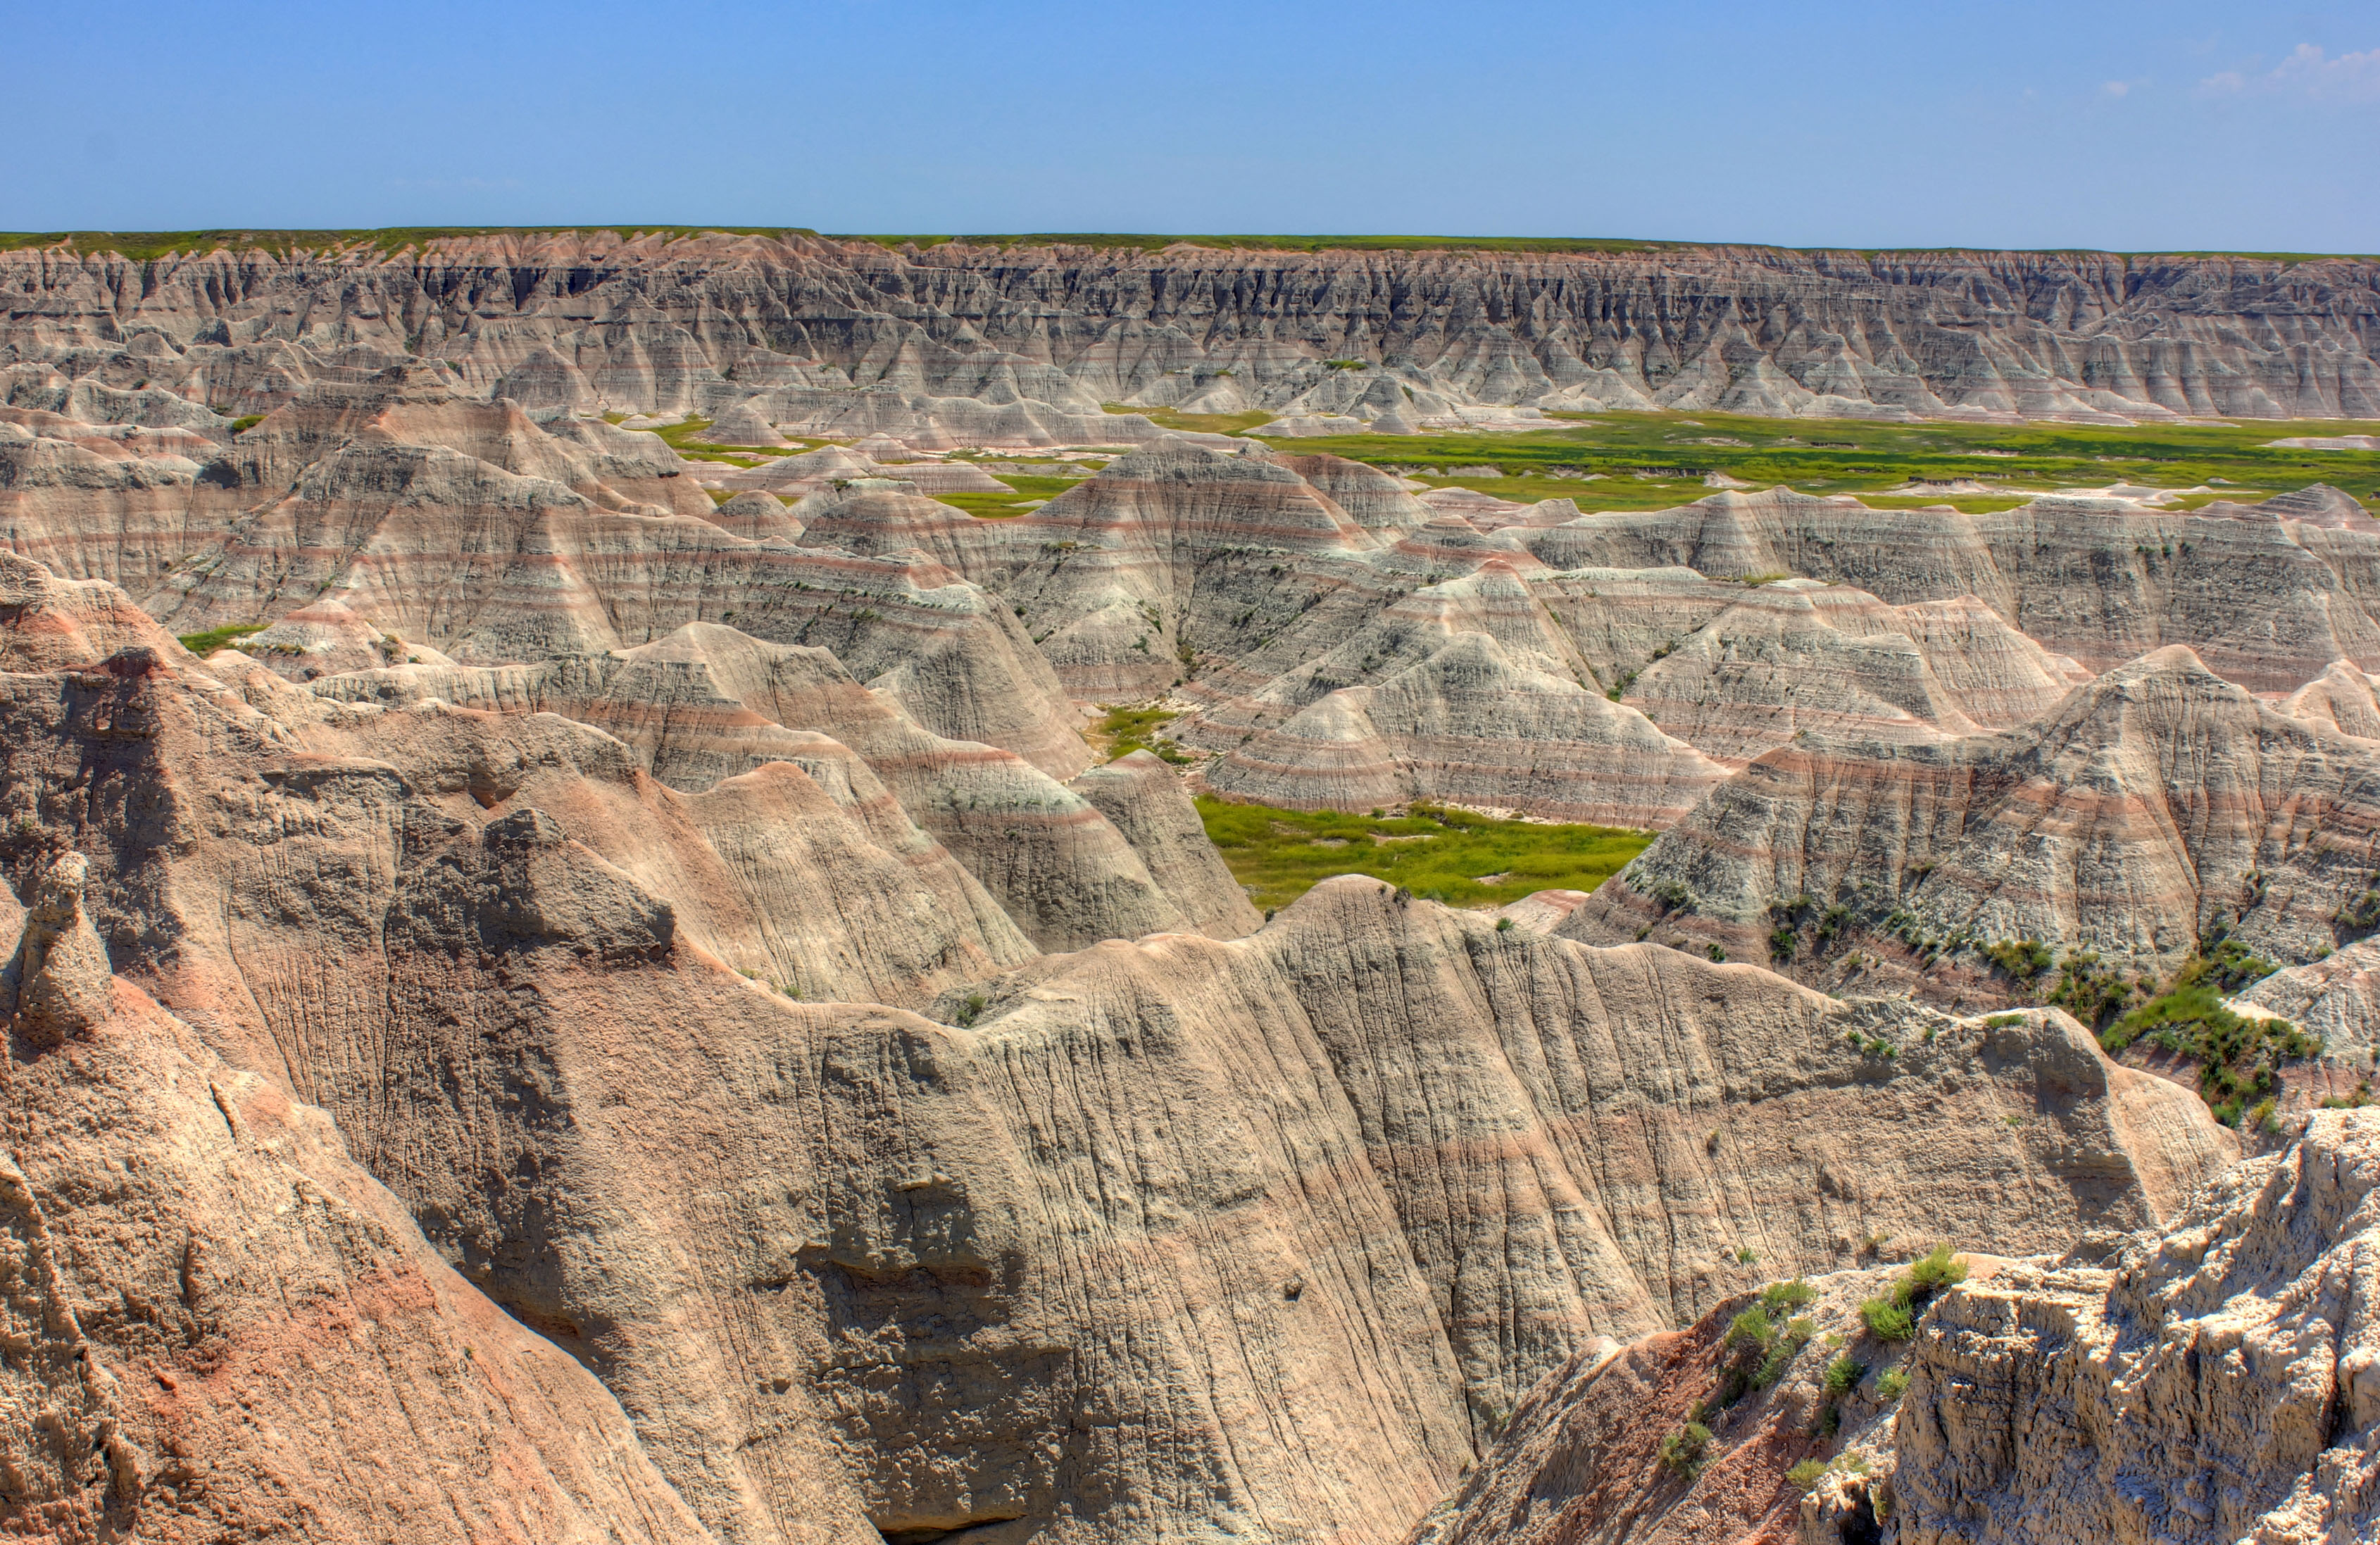 Closeup of the jagged landscape at Badlands National Park, South.